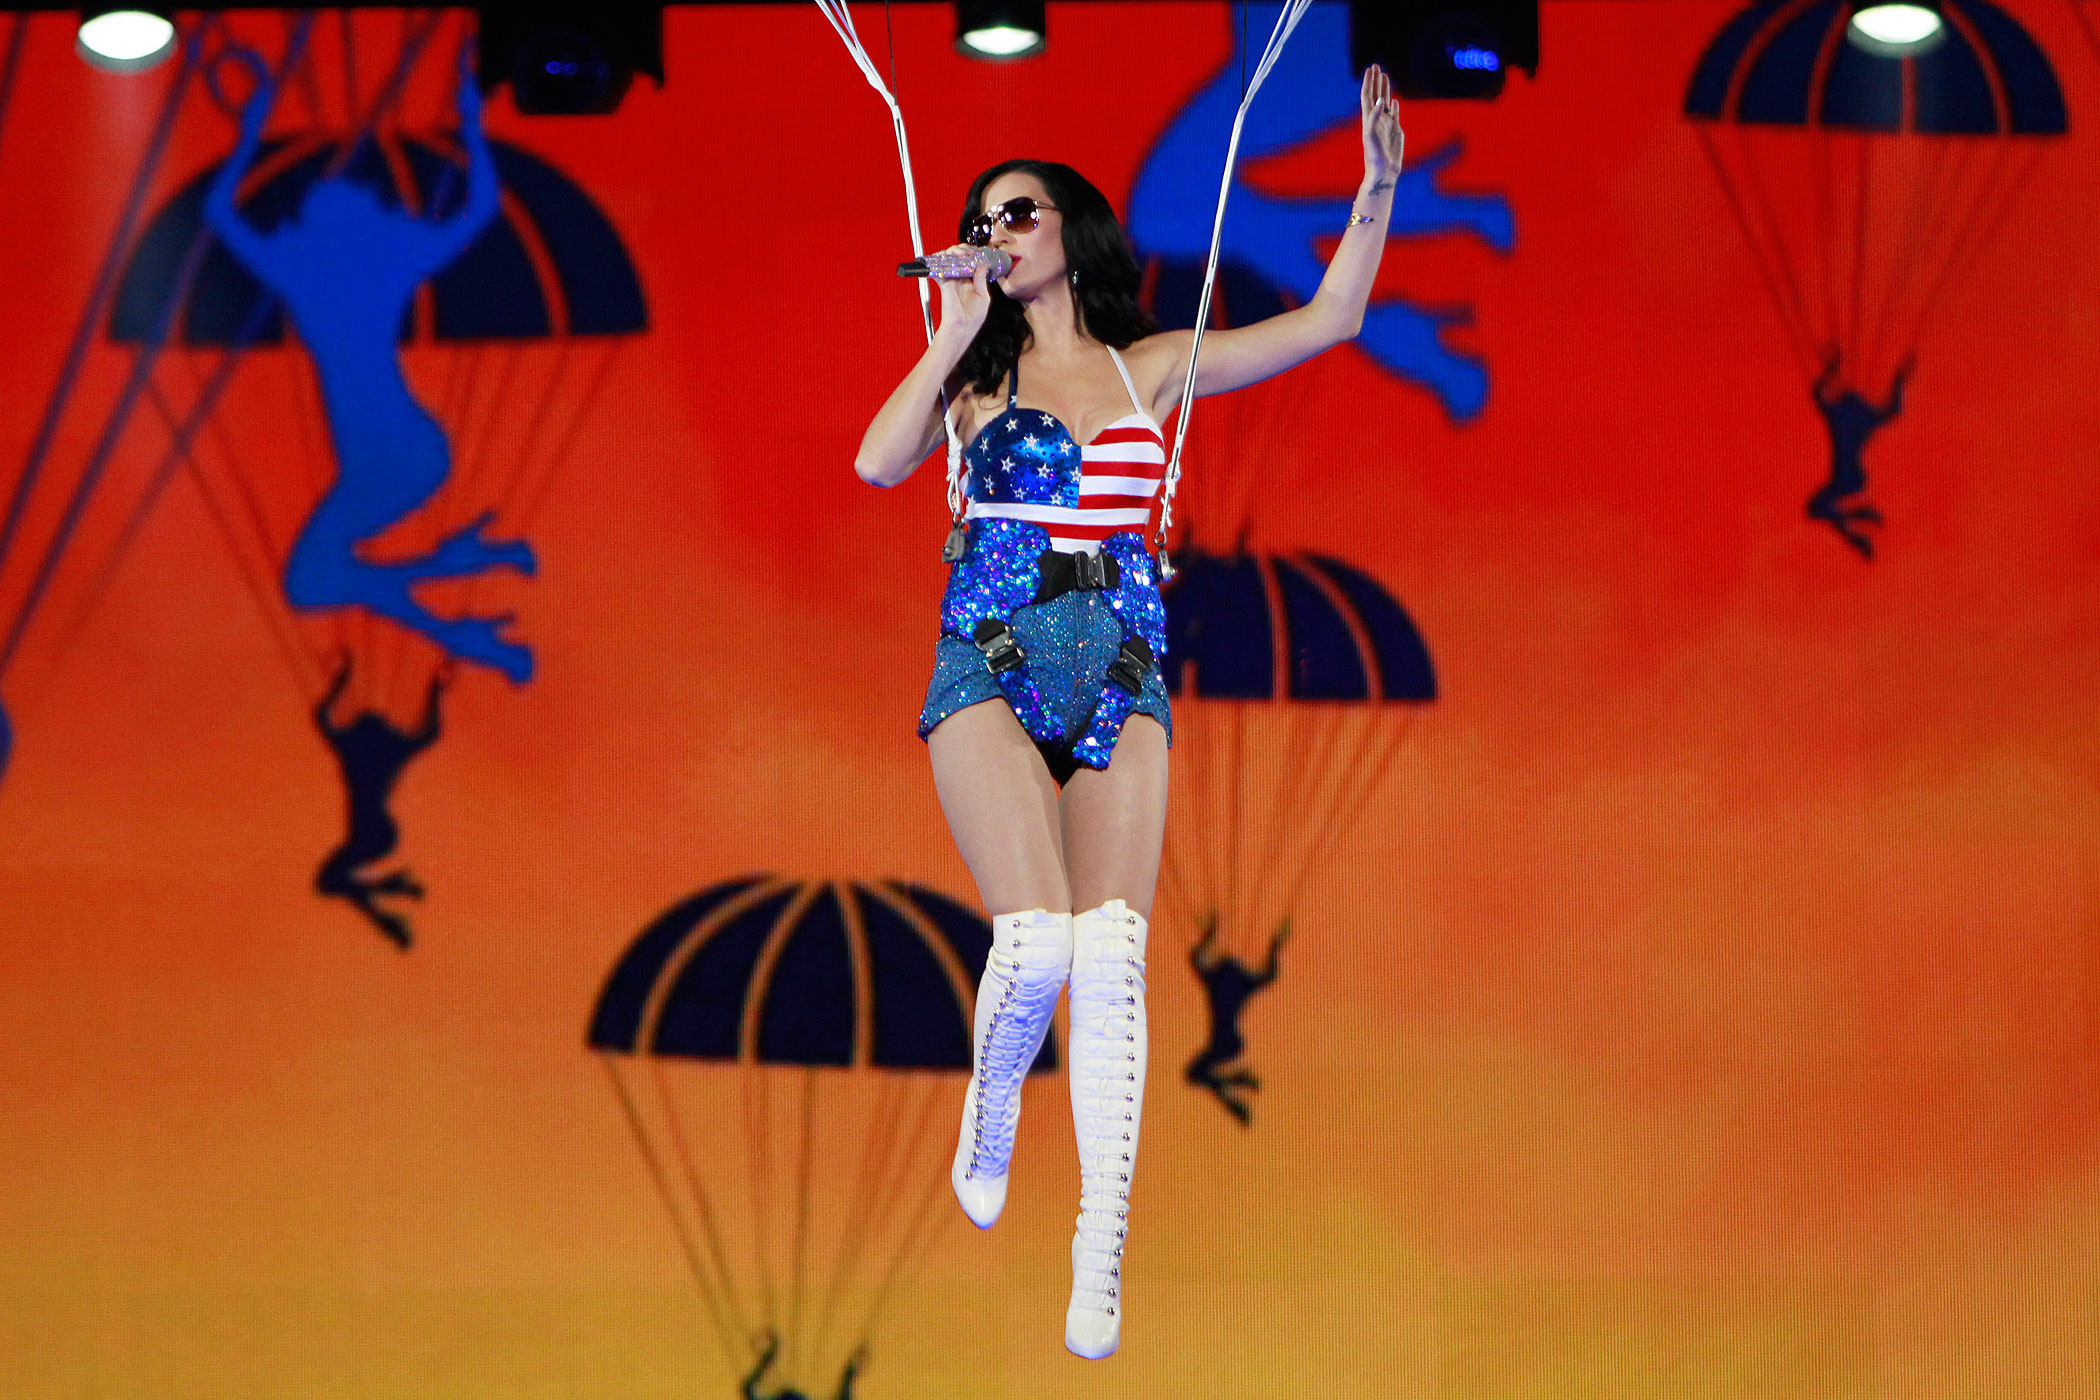 Katy Perry performs at the VH1 Divas Salute The Troops presented by the USO show at Marine Corps Air Station Miramar in San Diego on December 3, 2010.